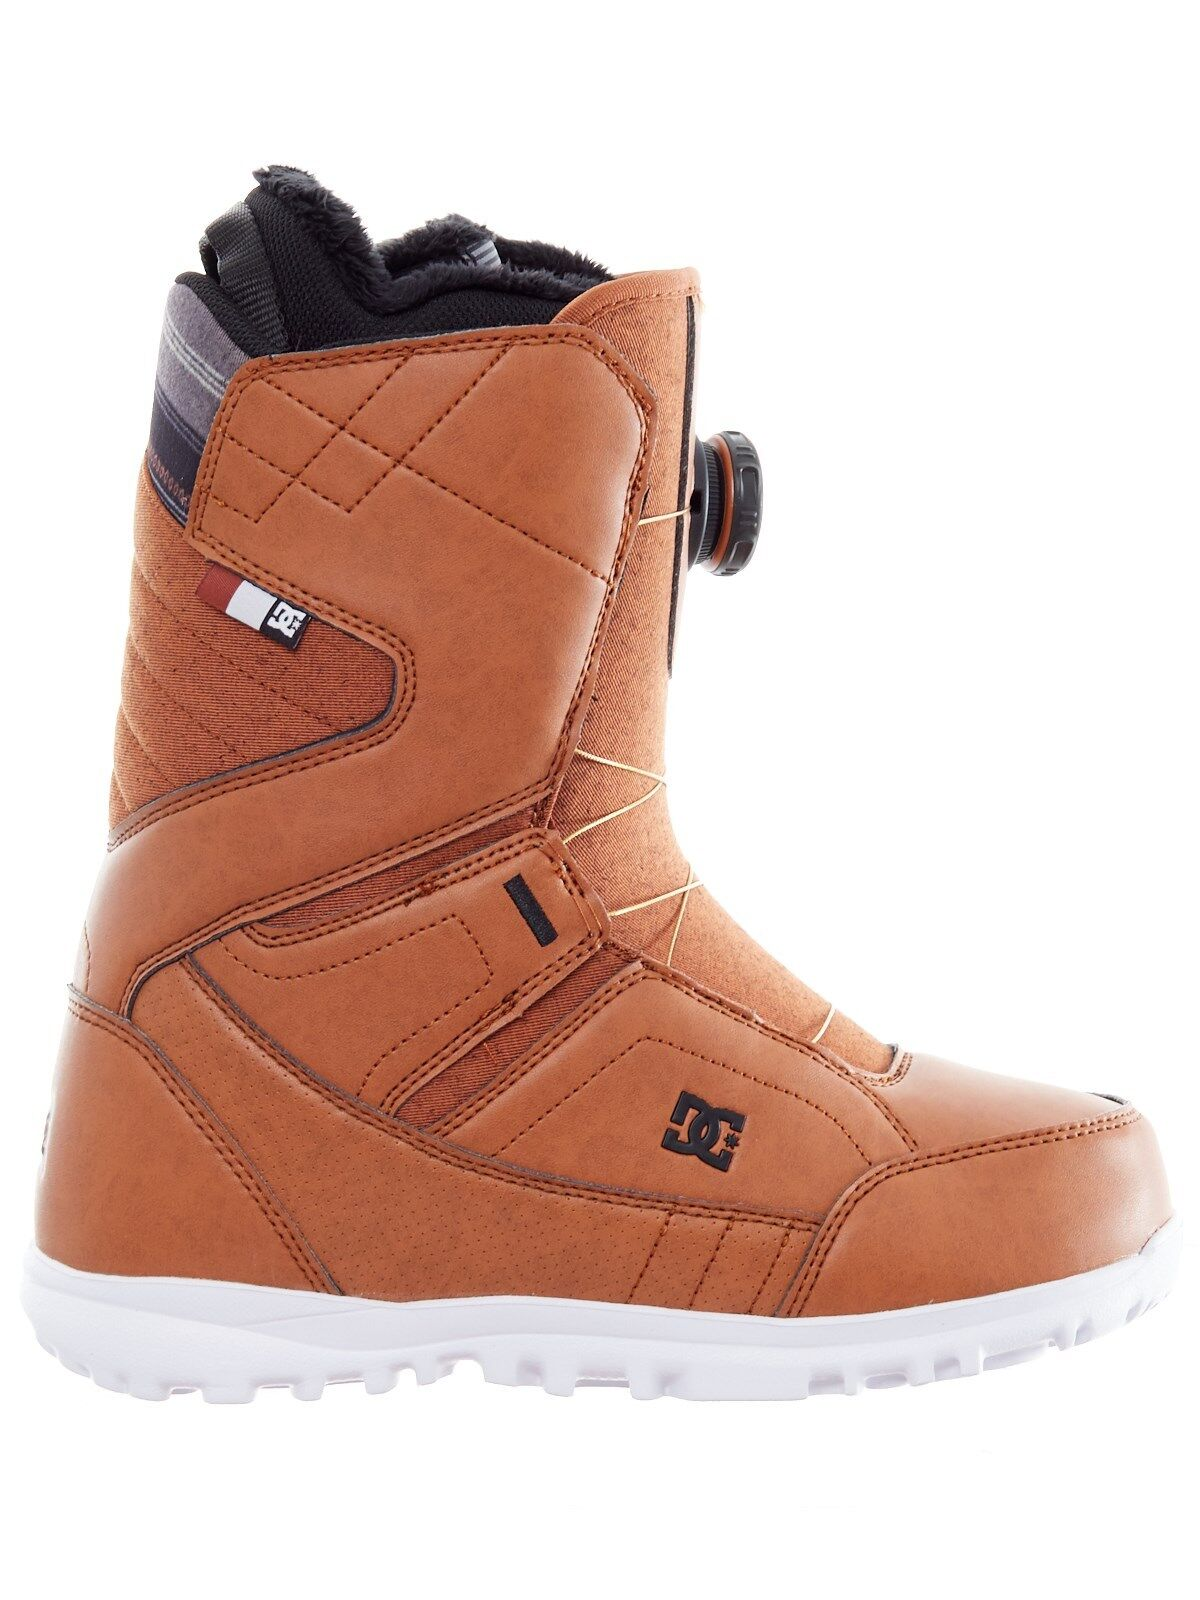 2018 DC Women's Search Boa Snowboard Boots, Brown, Many Sizes, Brand NEW